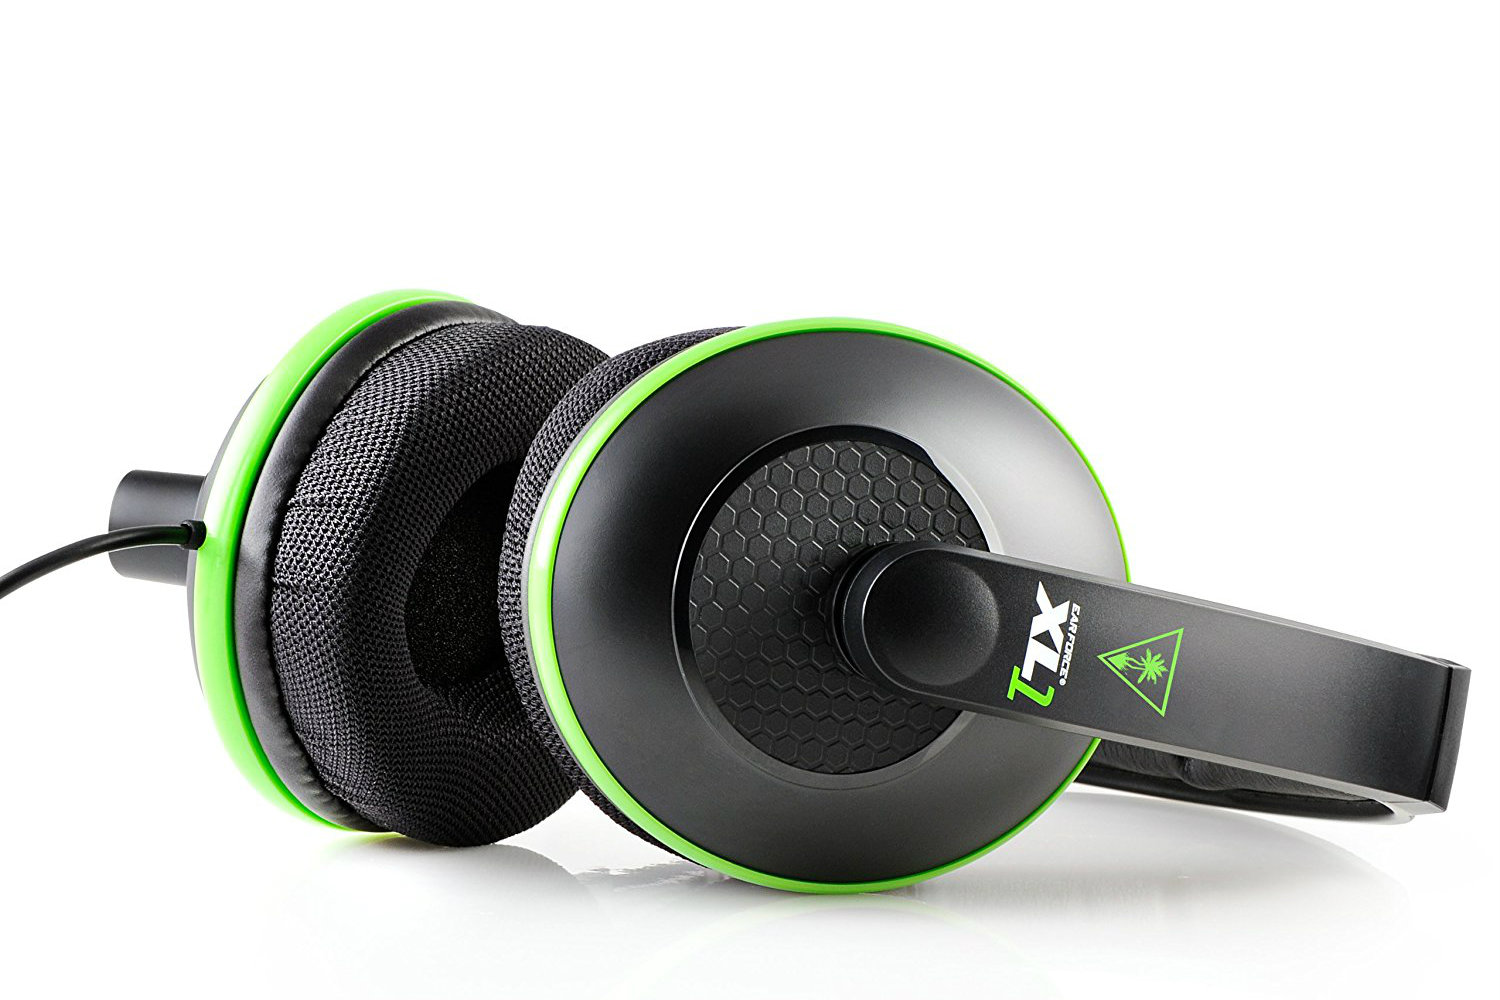 Turtle Beach Ear Force Xl Amplified Stereo Gaming Headset